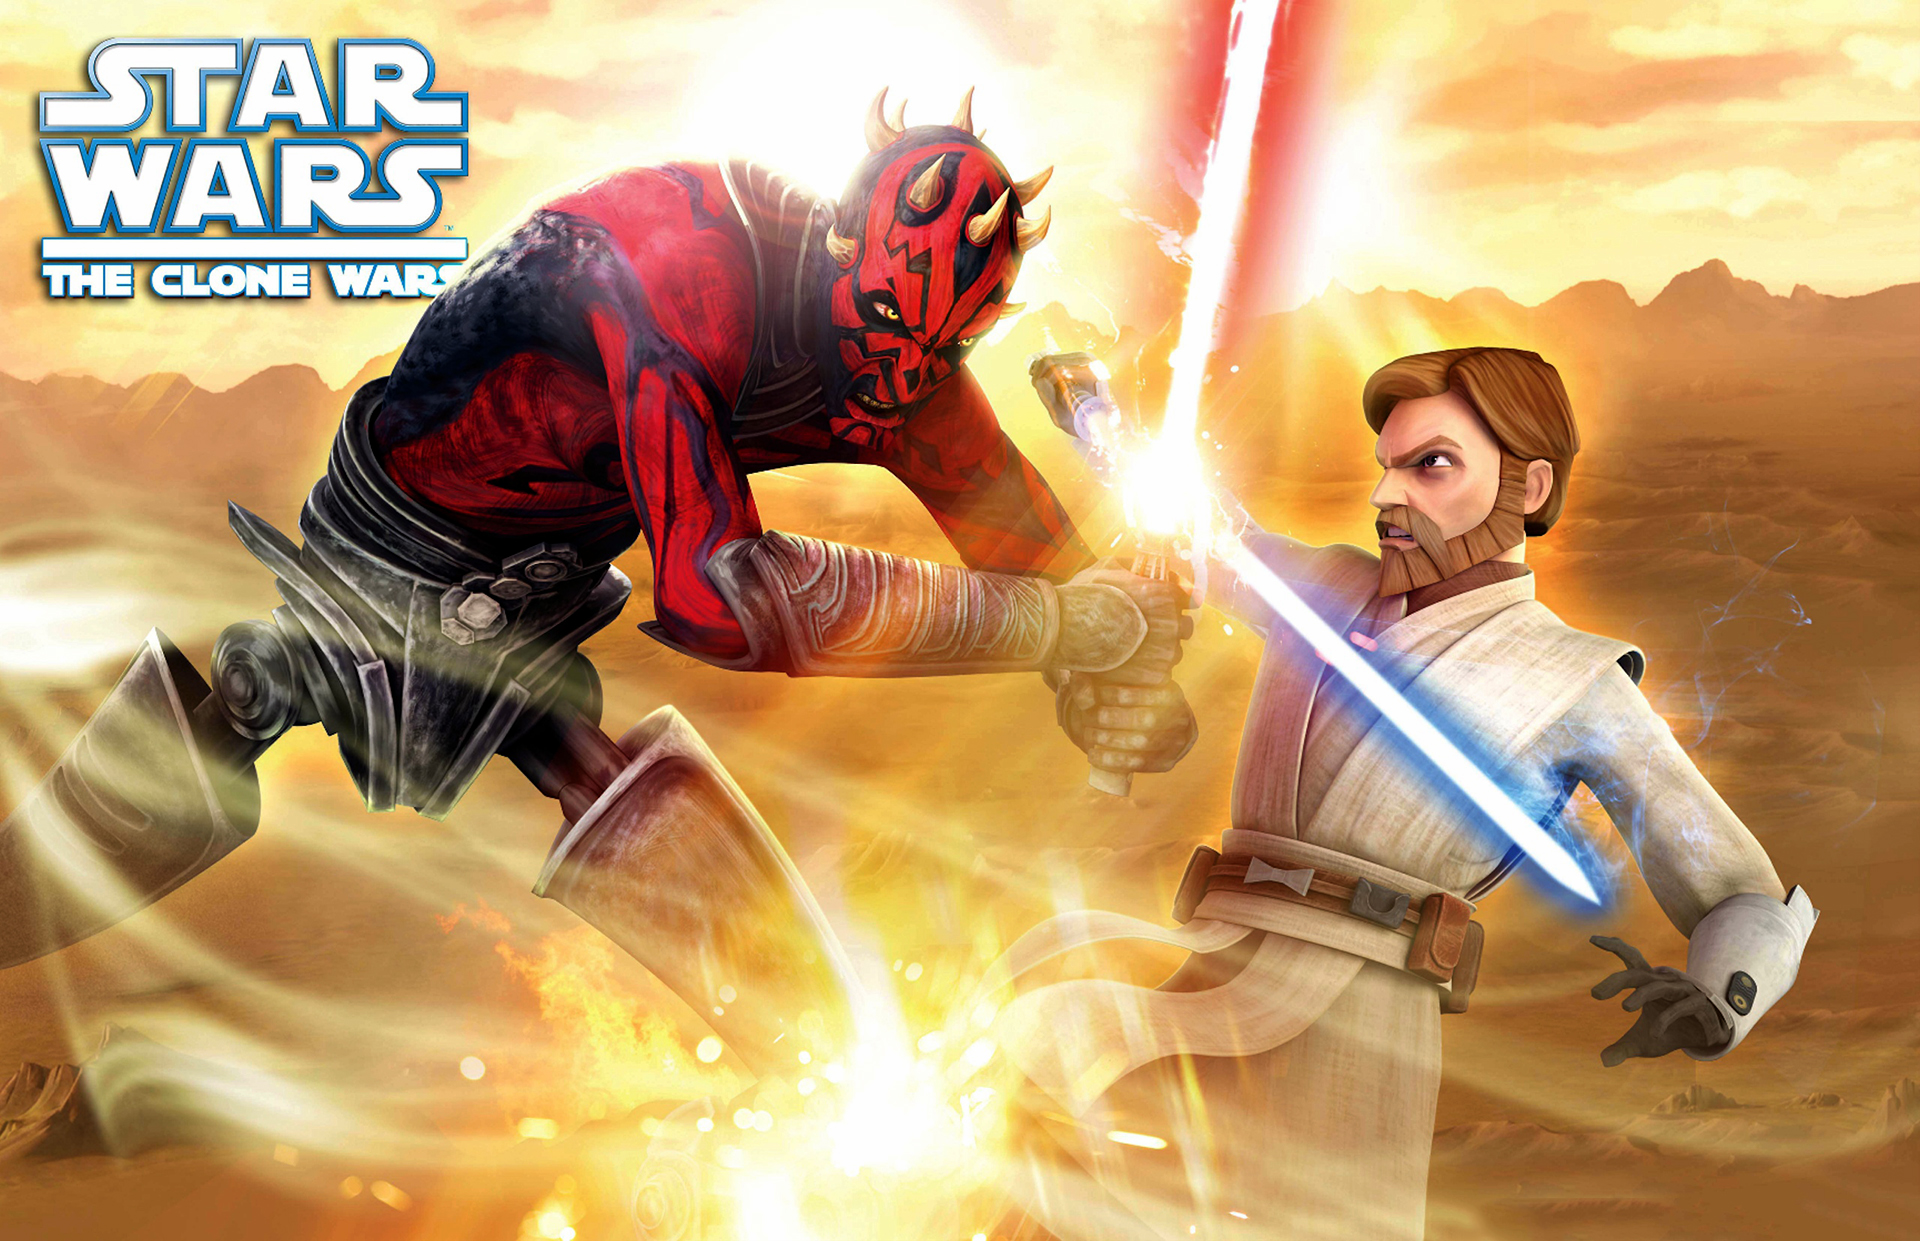 Darth Maul Vs Obi Wan The Clone Wars Wallpaper Image Sw M